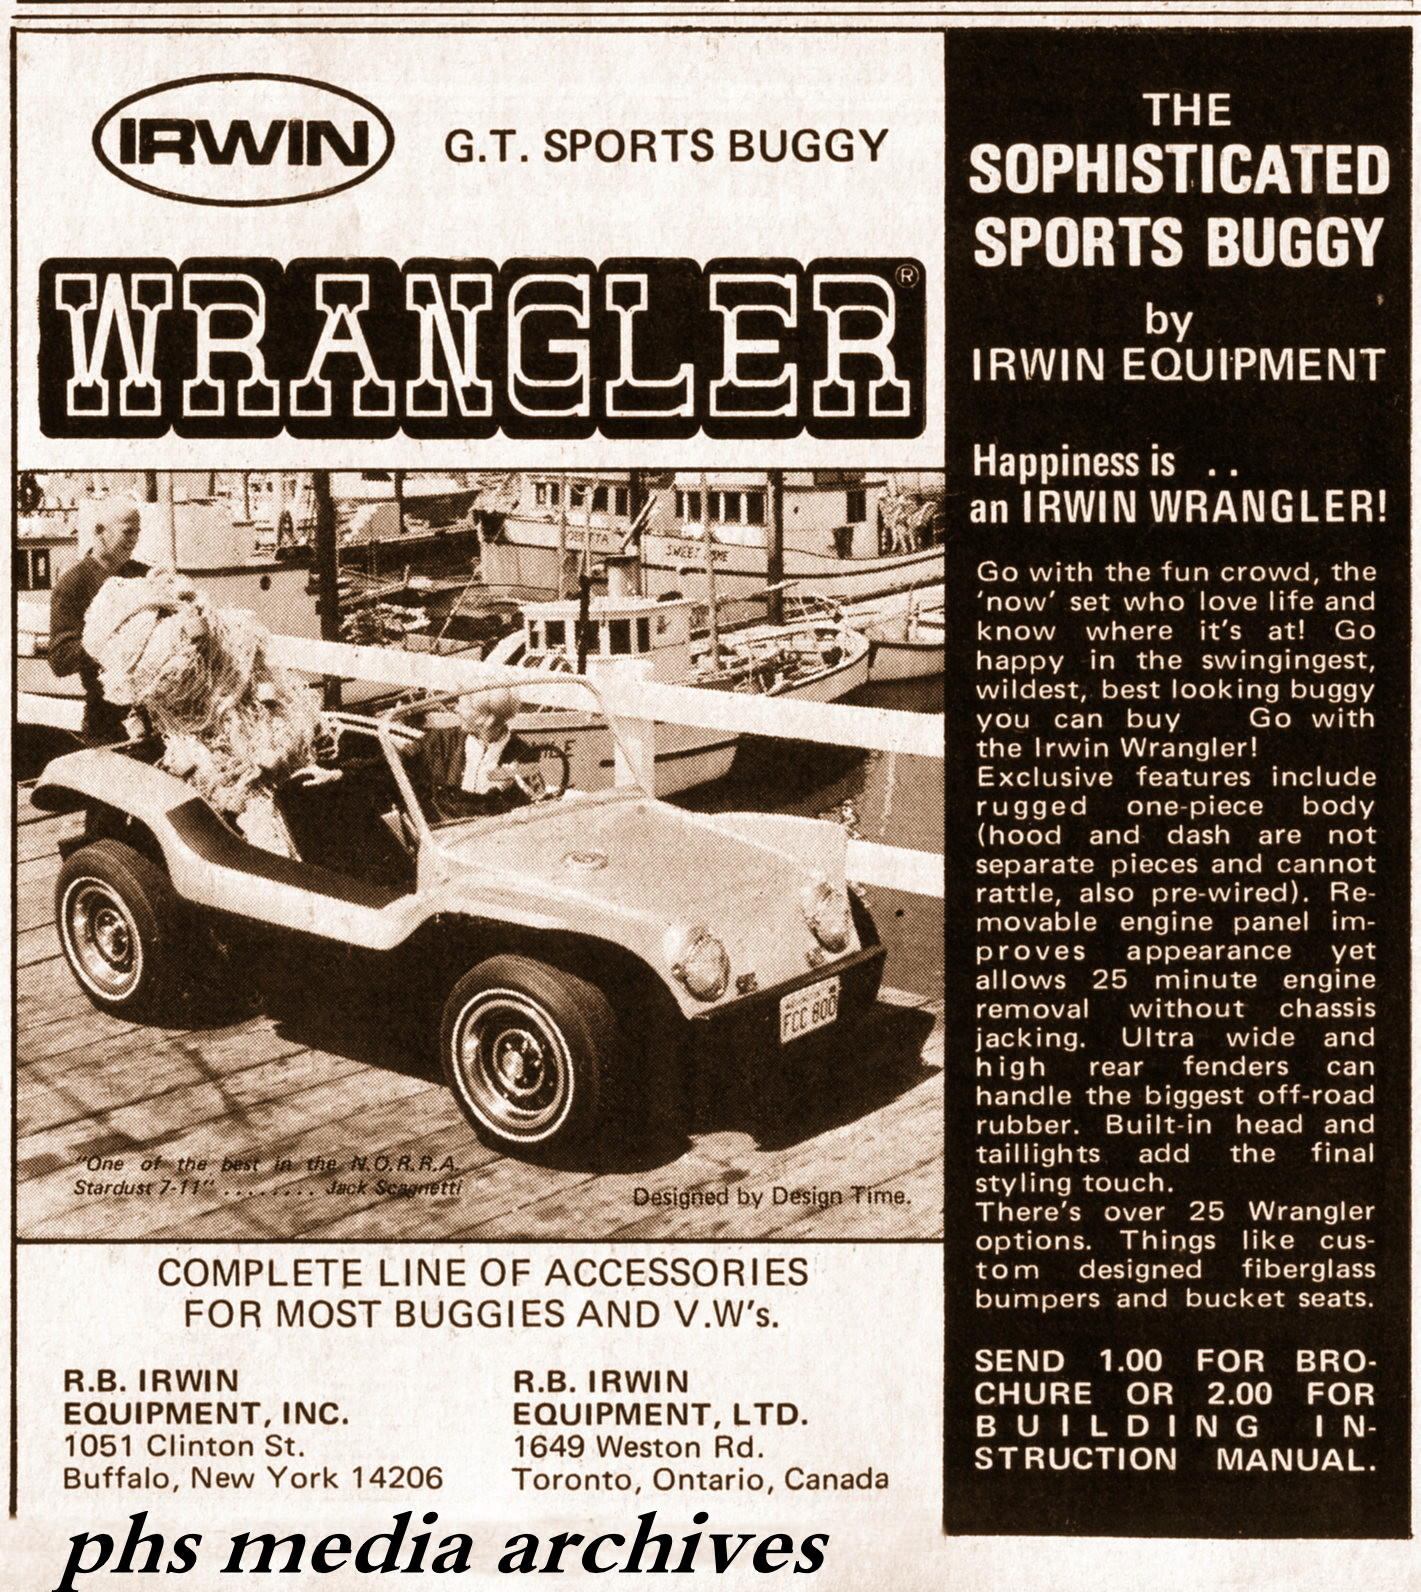 Summer Special On 1960s Dune Buggy Kits Phscollectorcarworld 1967 Vw Beetle Simple Wiring Diagram Wrangler Gt Sports Was Available In Usa And Canada Through Offices Toronto Buffalo This A Bit More Pricey Kit Than Standard